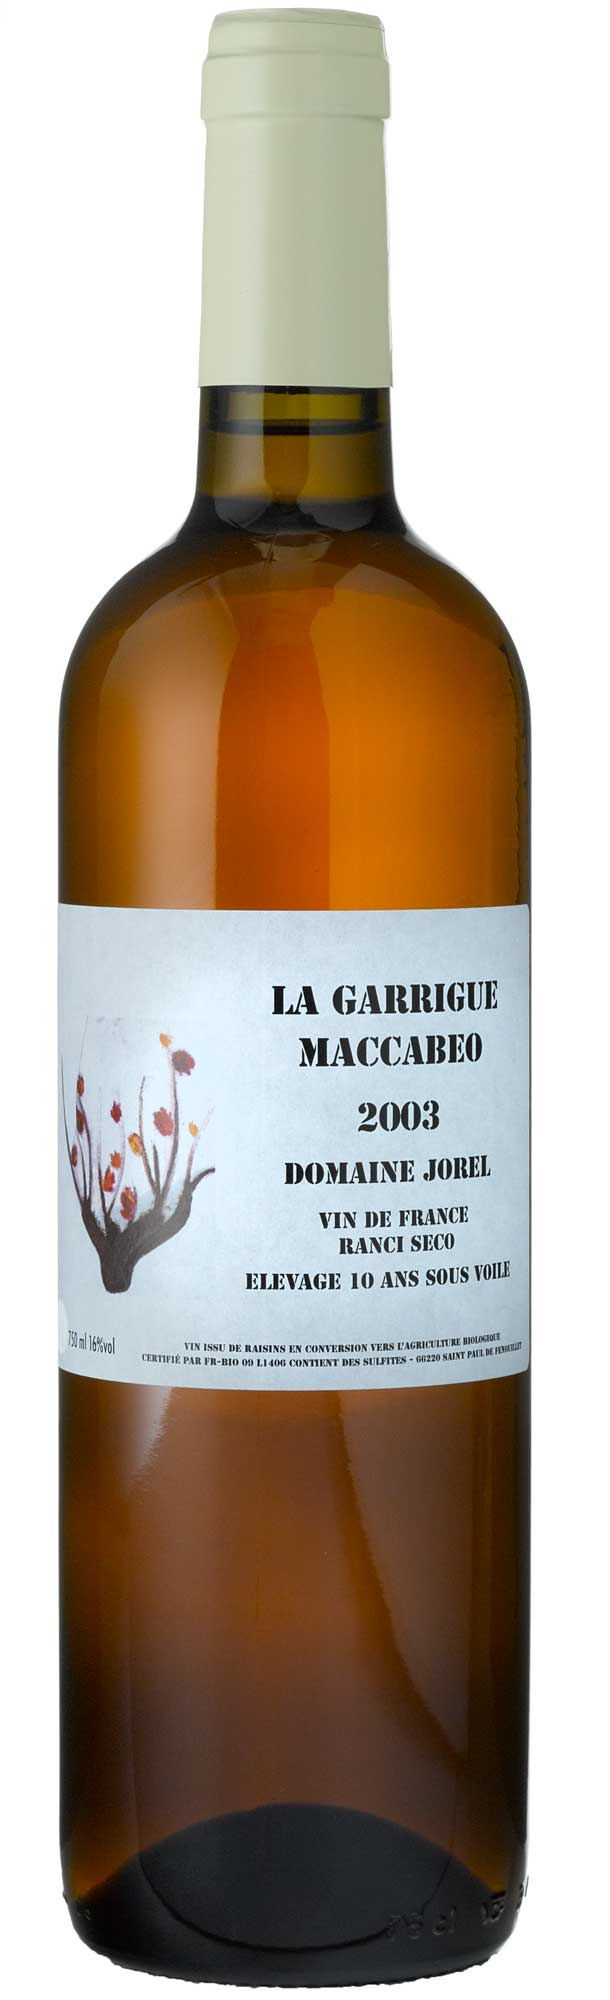 Domaine Jorel 'La Garrigue' Rancio Sec 2003